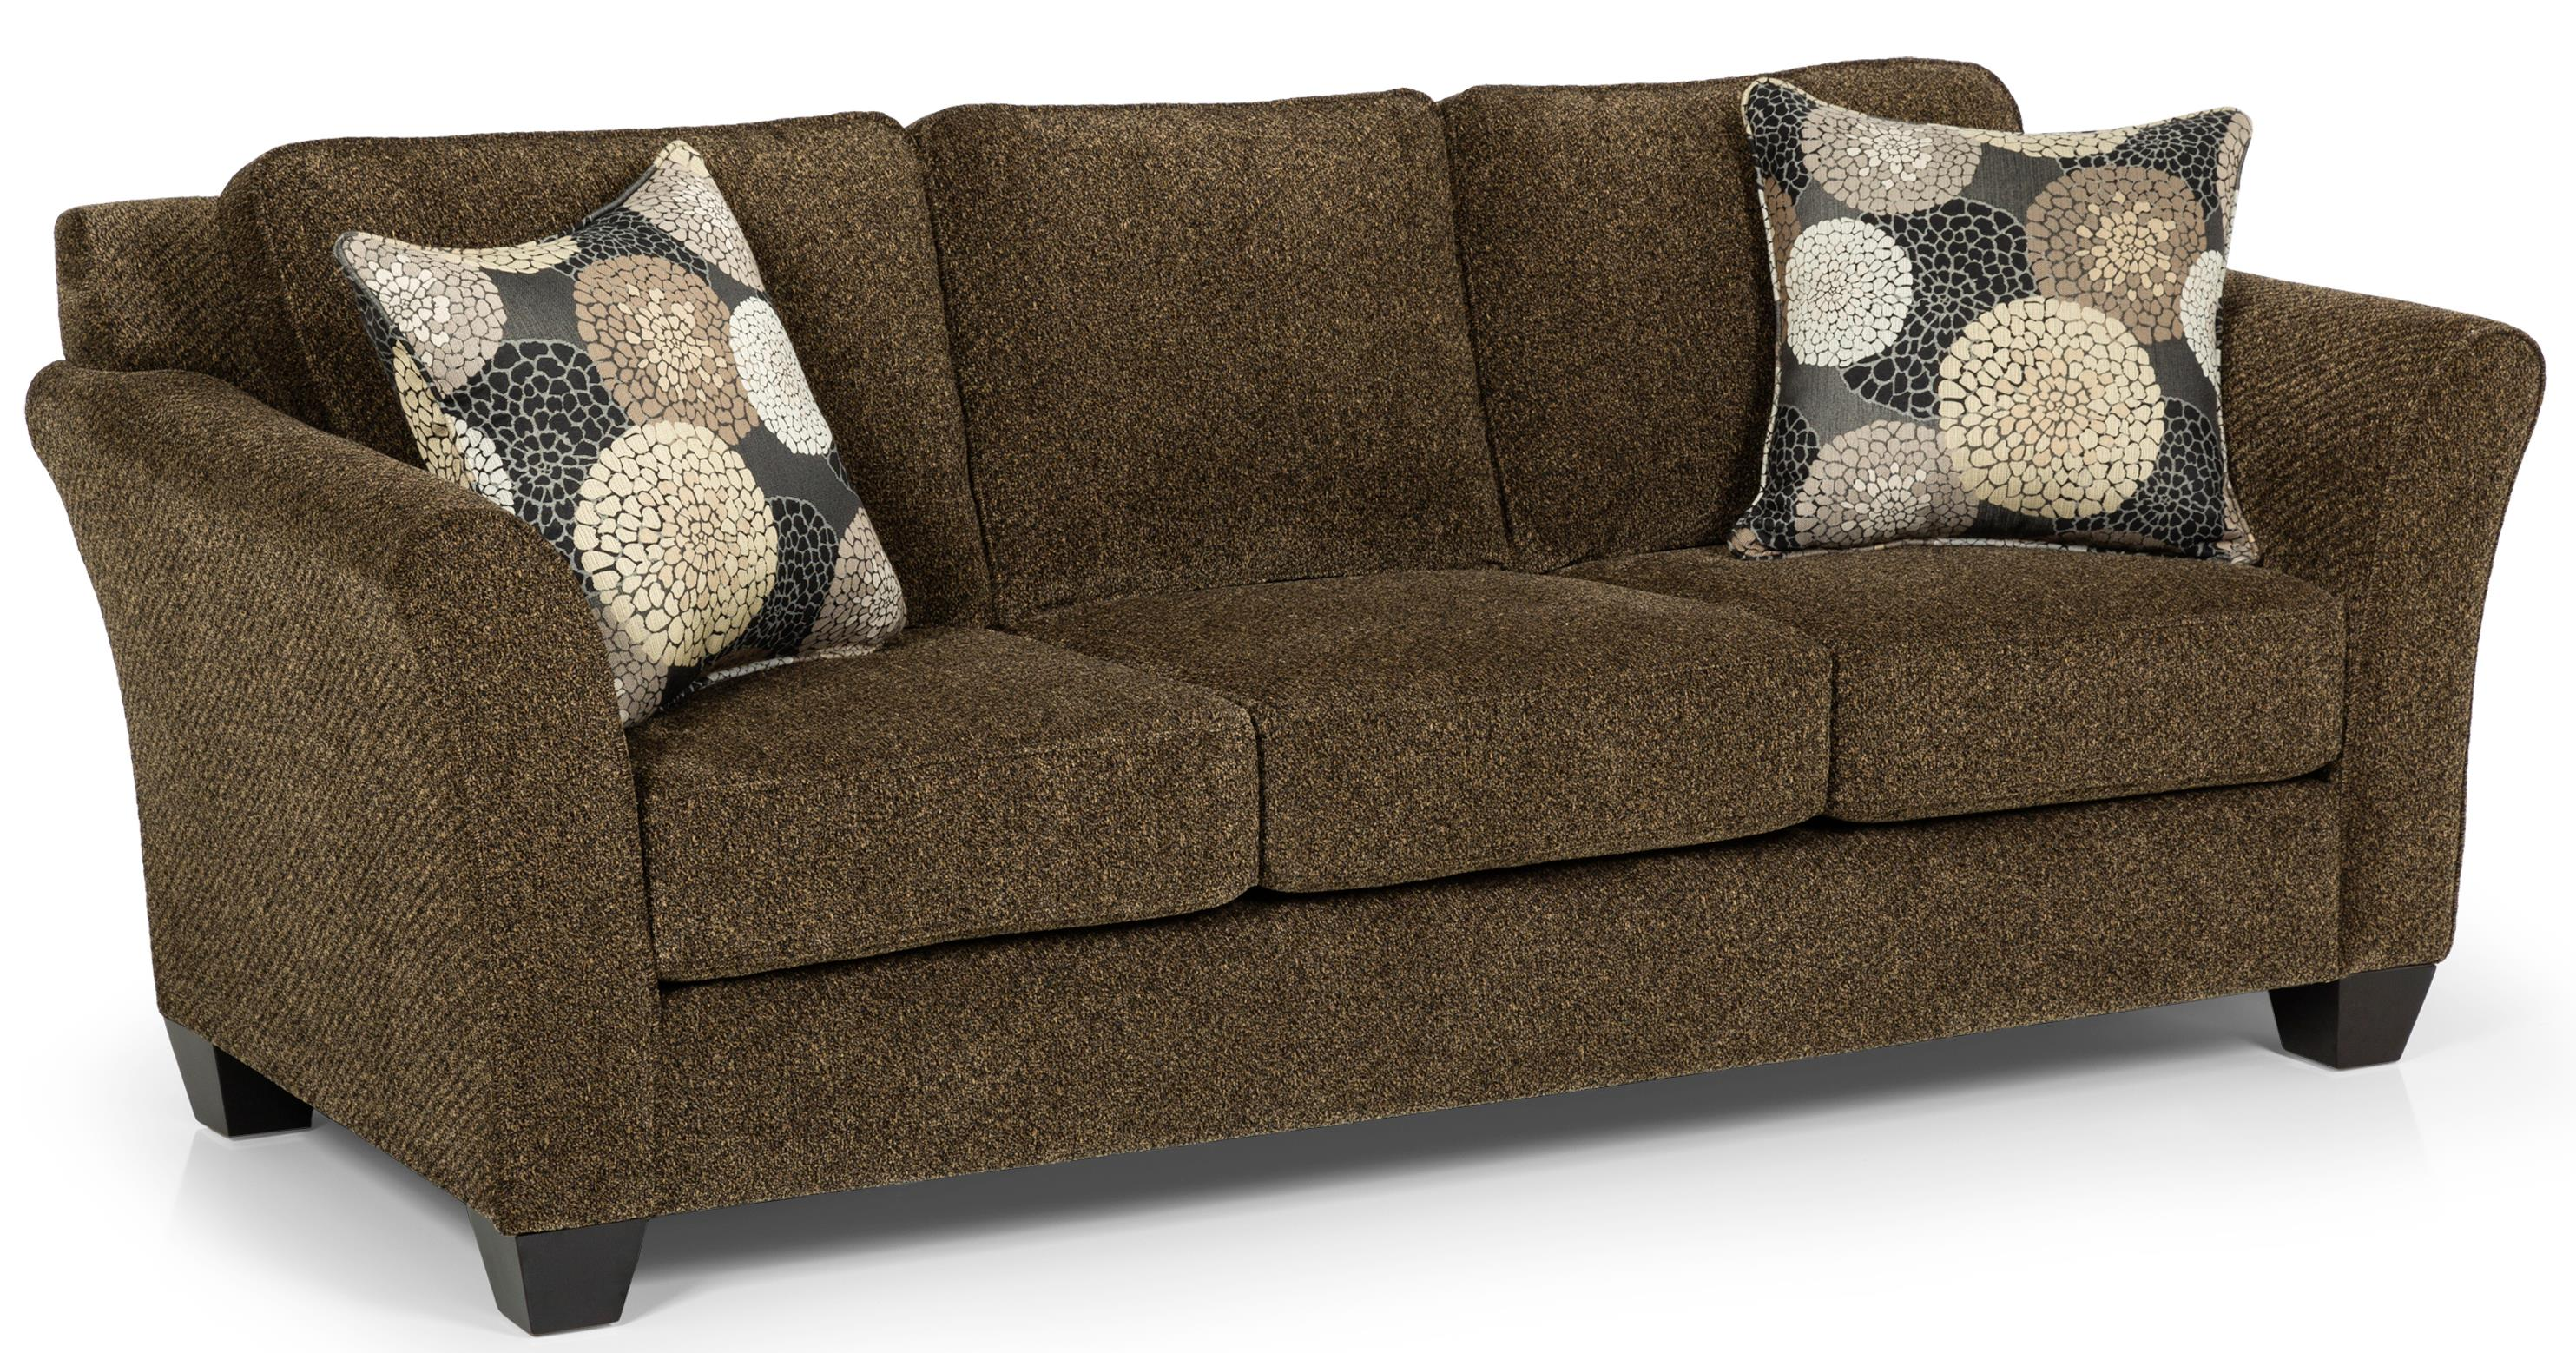 Stanton 184 Gel Sleeper Sofa - Item Number: 184-15G